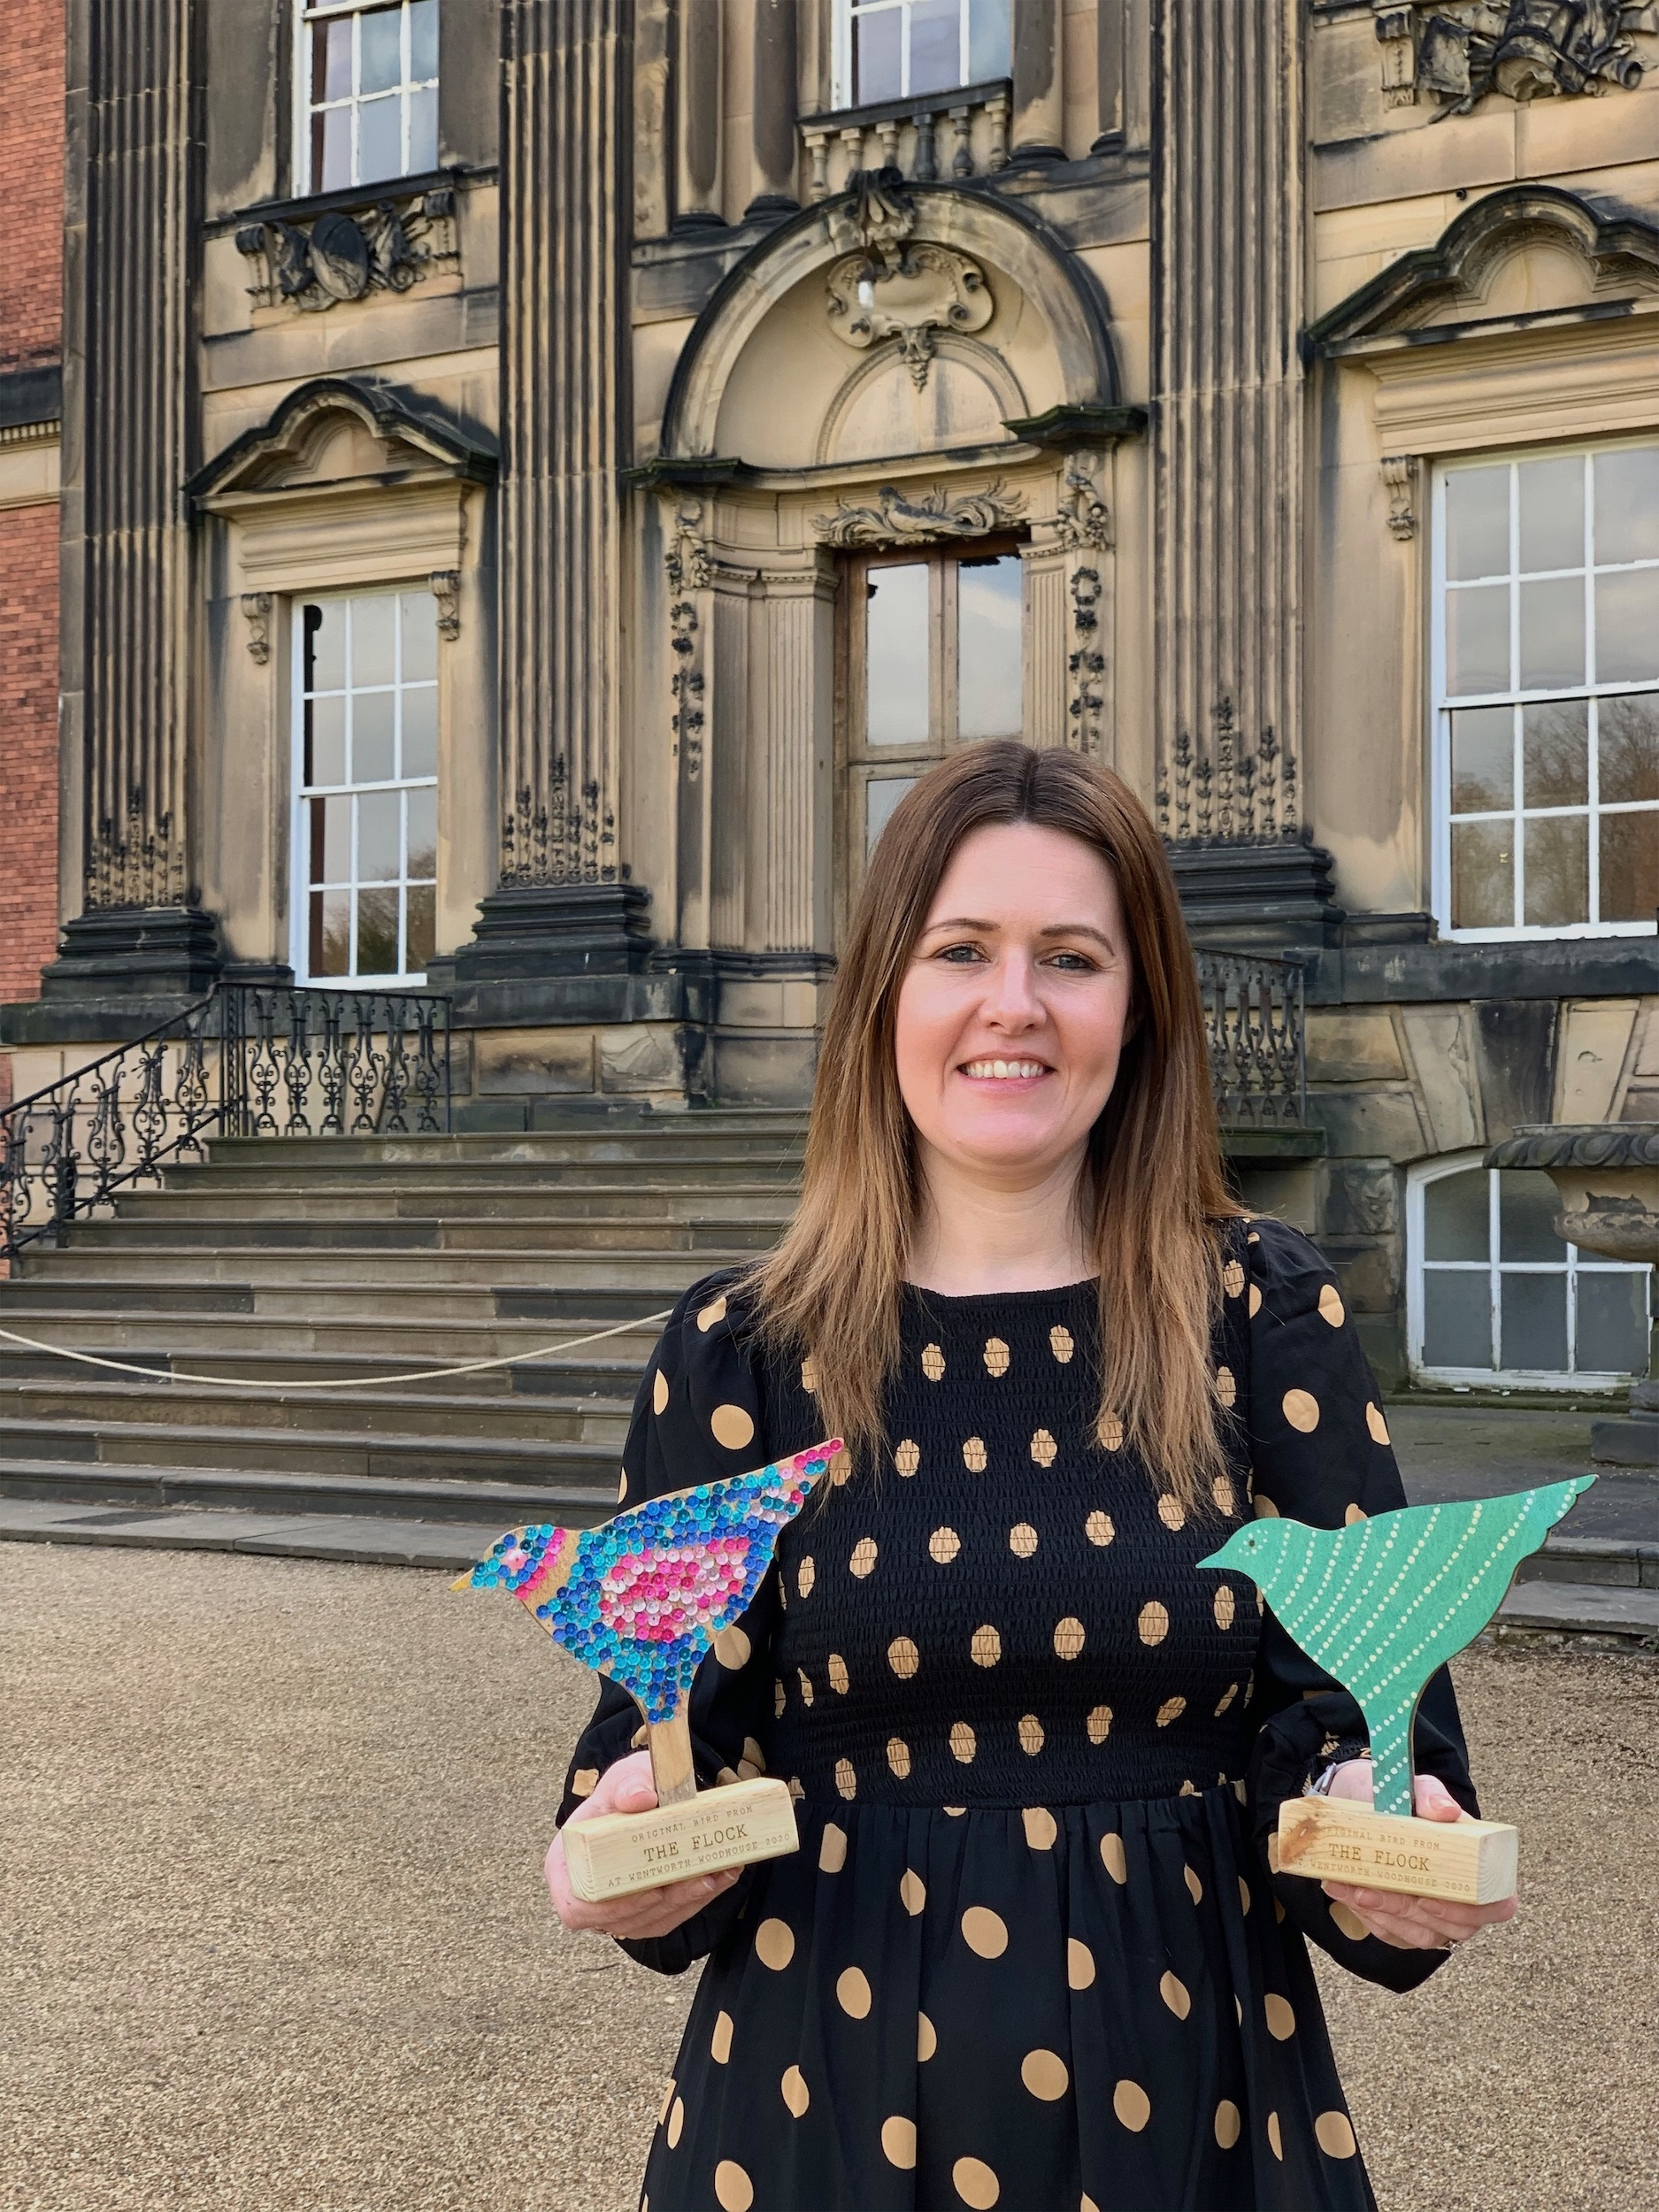 Samantha Heritage, the new Head of Fundraising at Wentworth Woodhouse, with birds from The Flock which are now up for sale